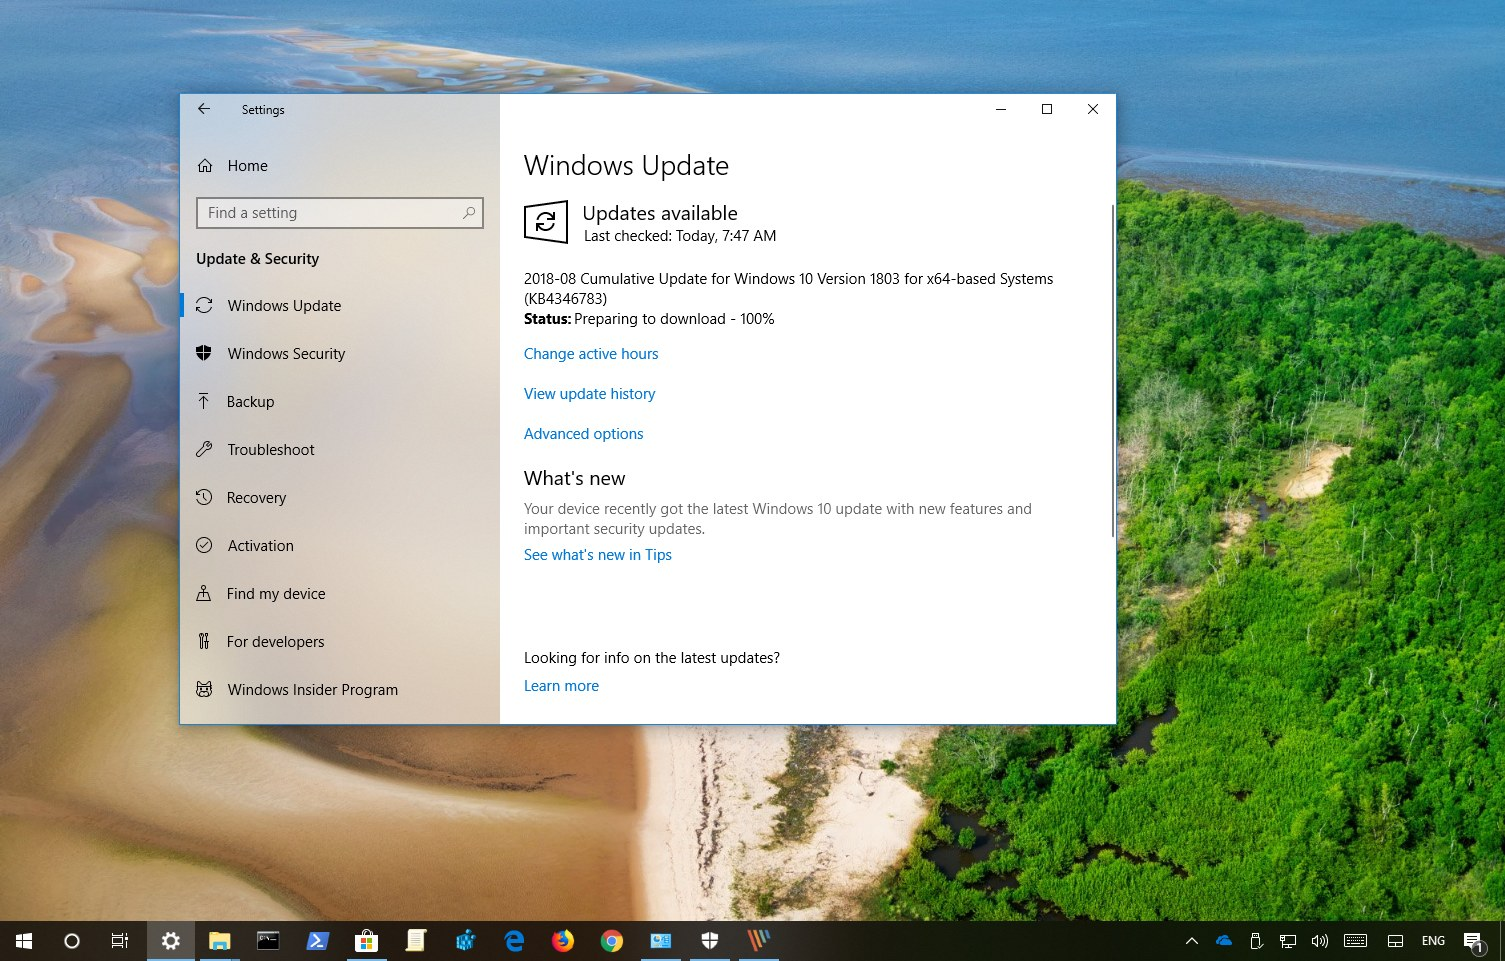 2019-01 update for windows 10 version 1803 for x64-based systems